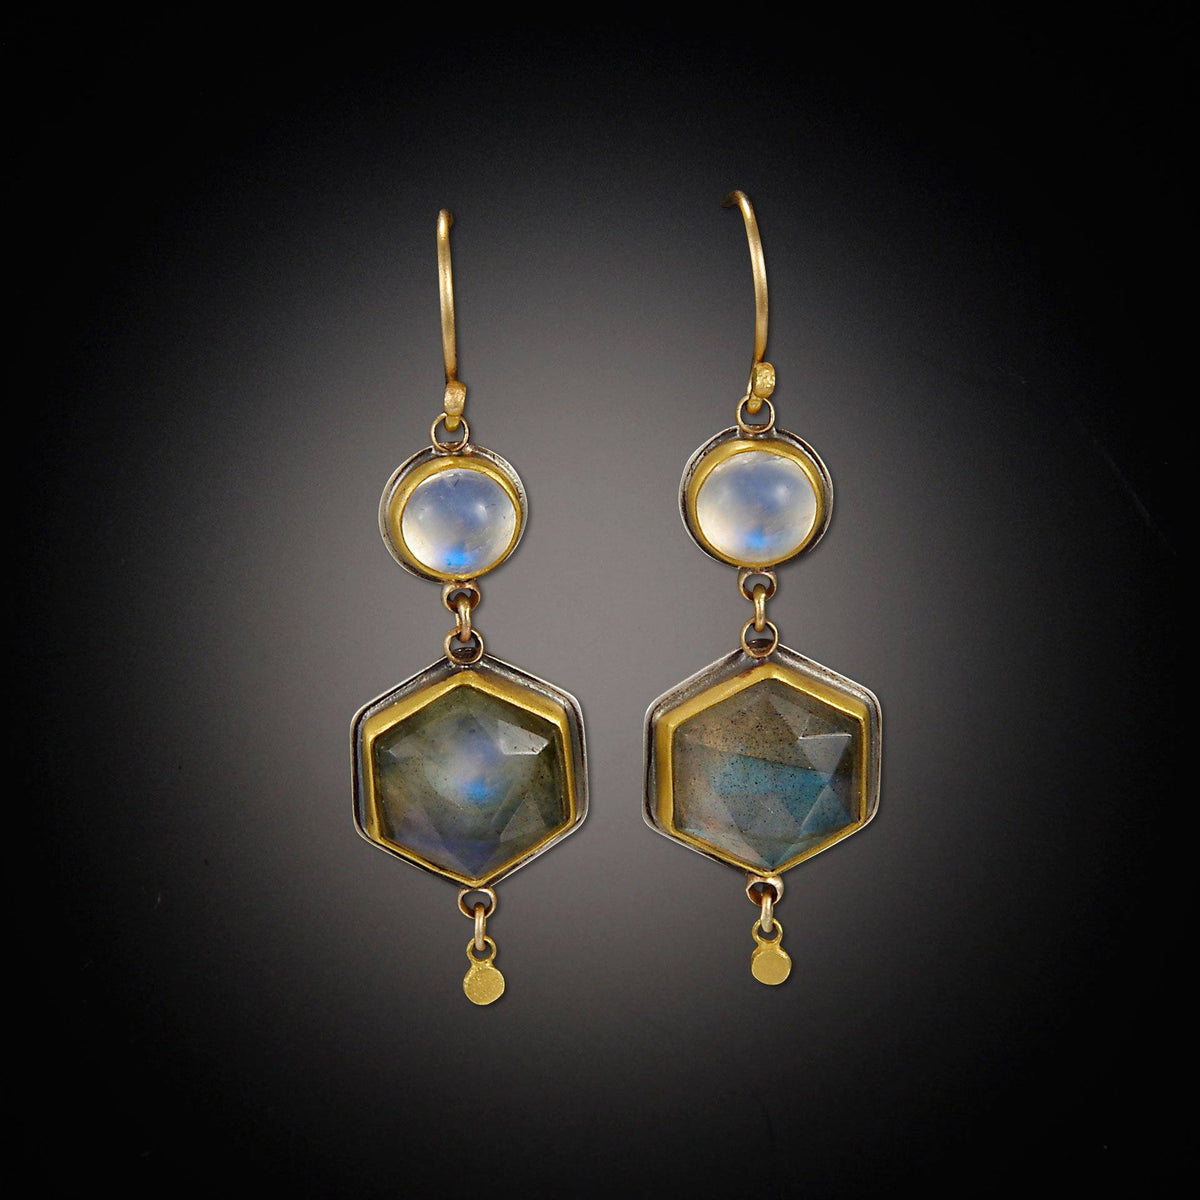 New Labradorite and Moonstone Earrings SM99